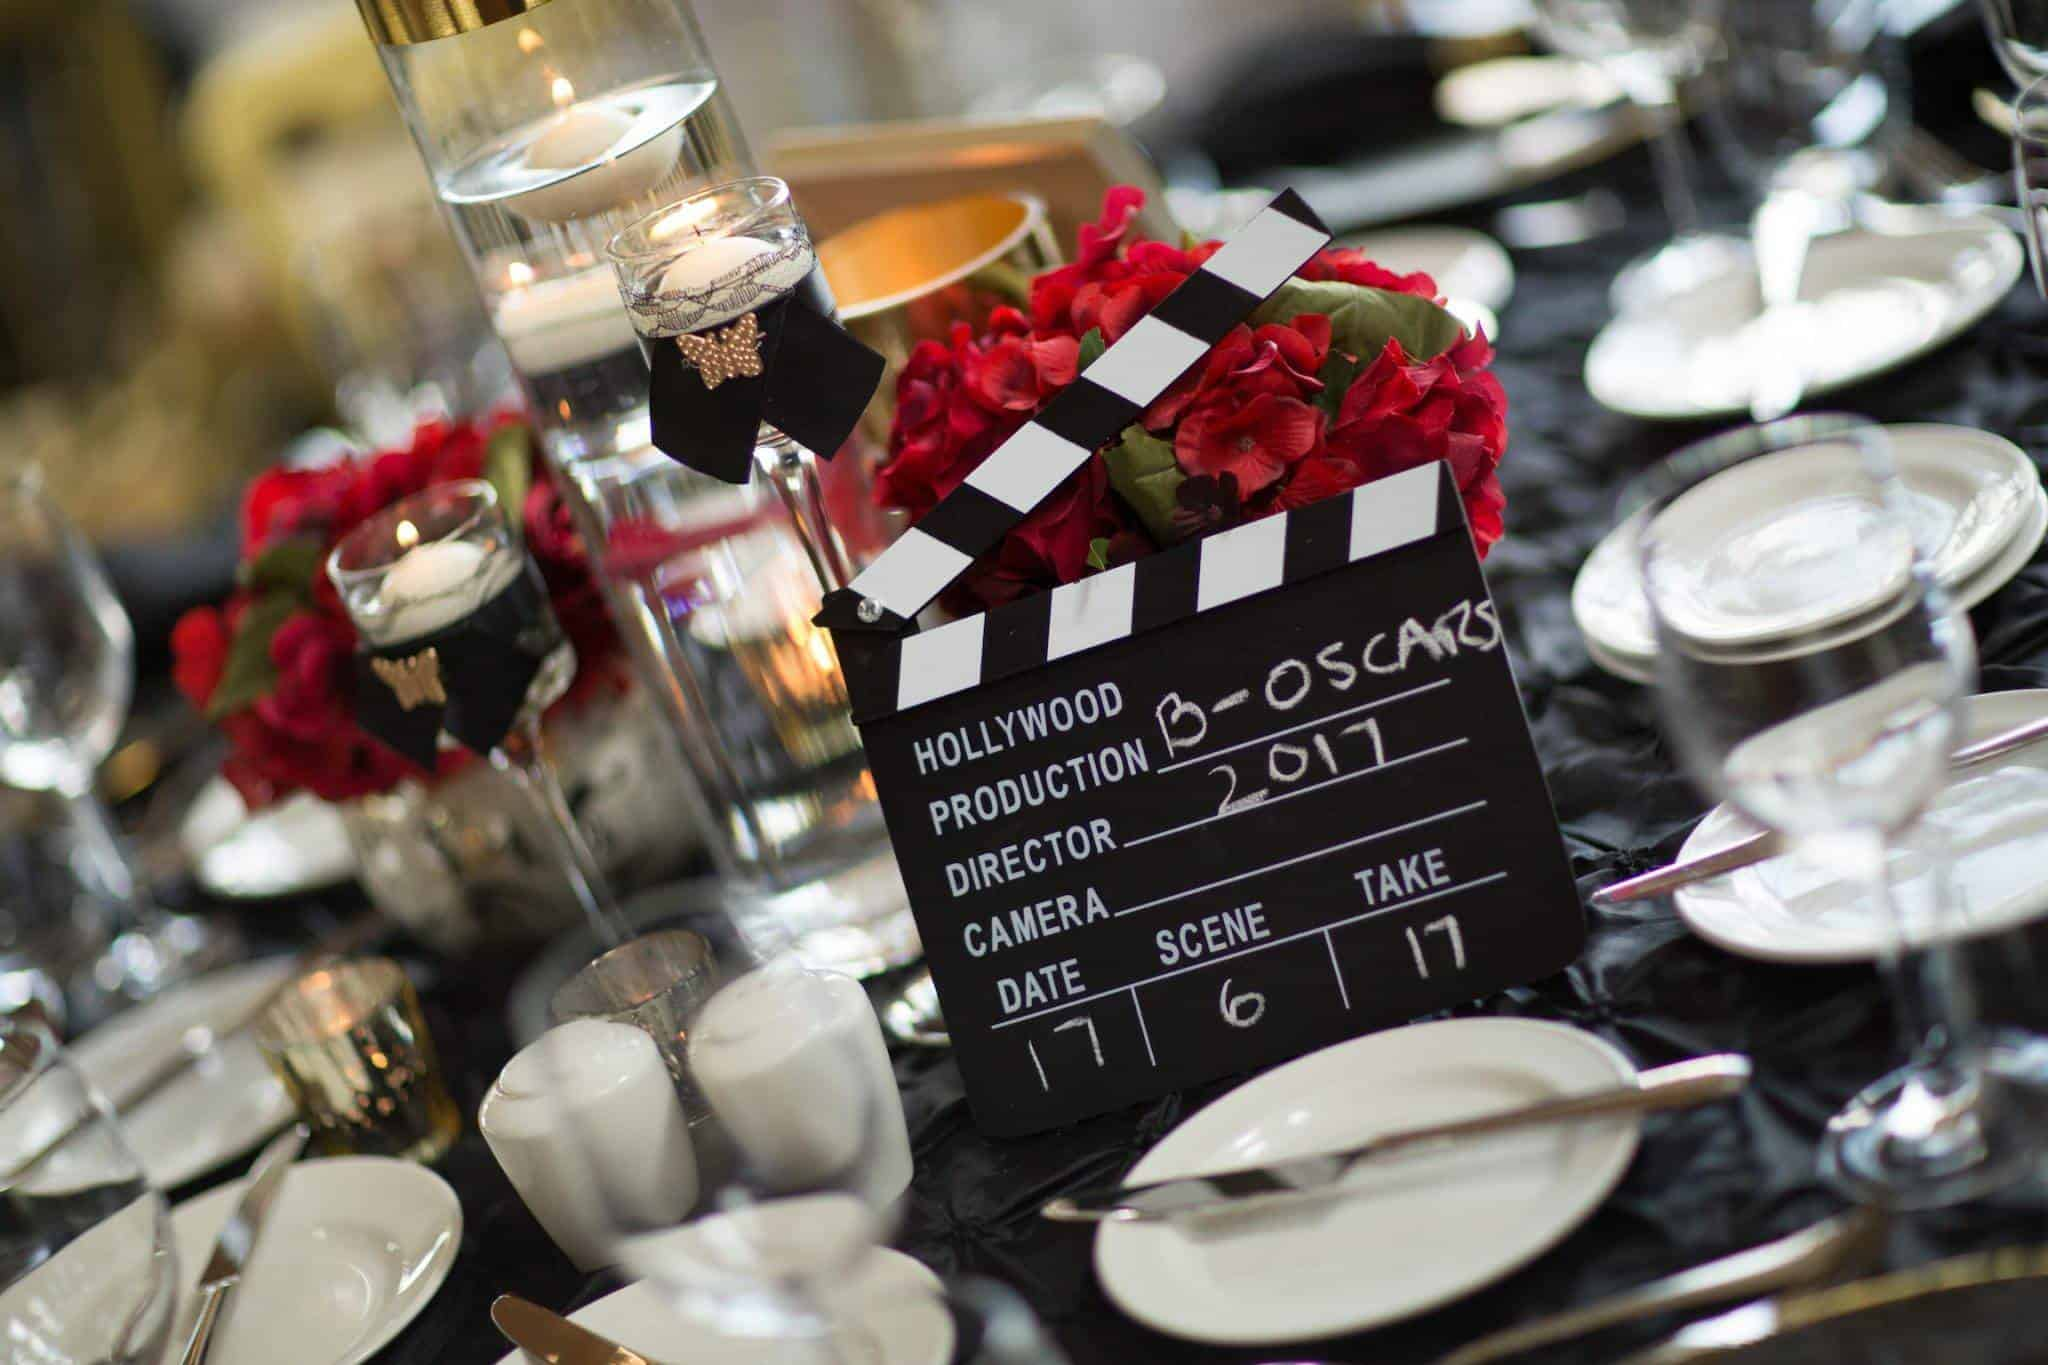 Theme your celebration - Hollywood style